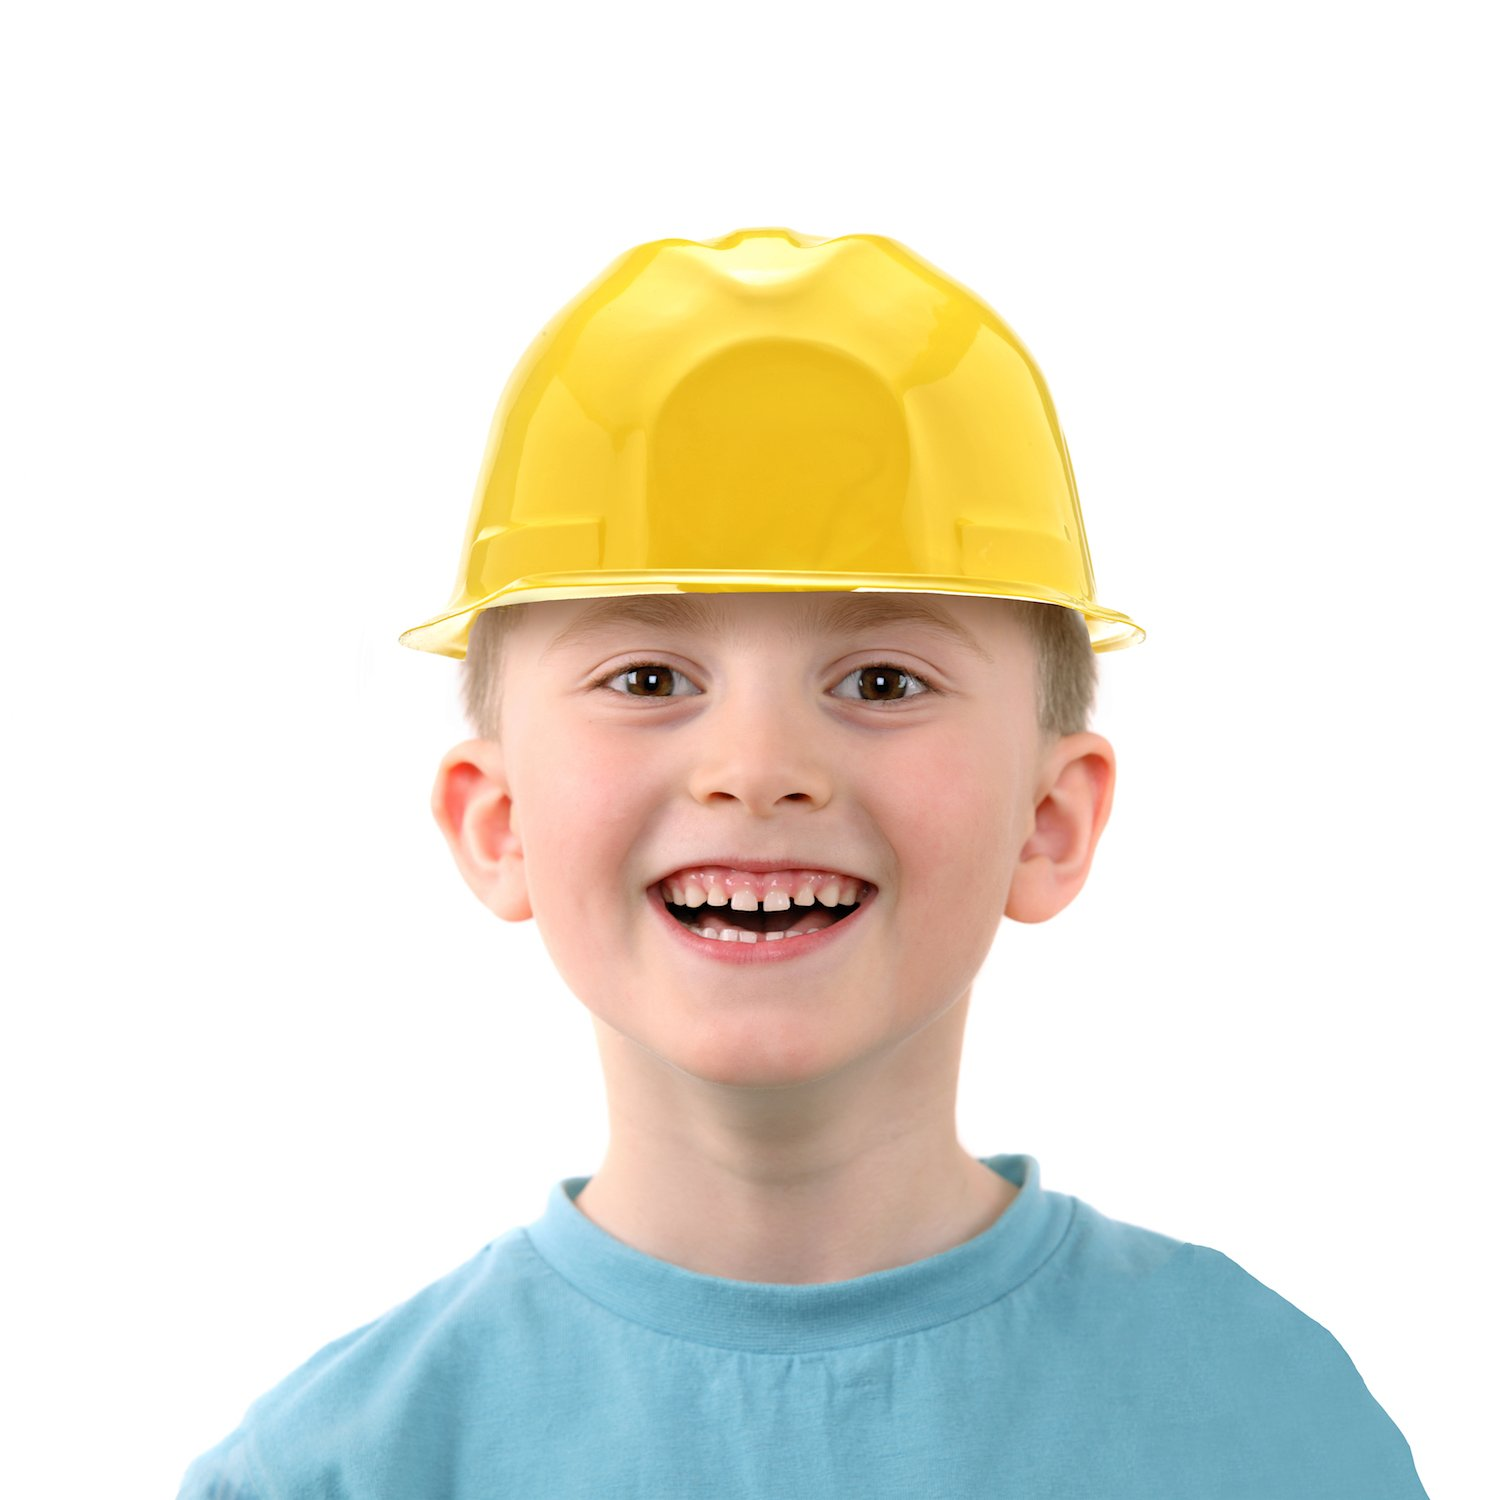 Bottles N Bags 24 Pack of Child Size Plastic Yellow Construction Hats for Young Builders by by Bottles N Bags (Image #4)